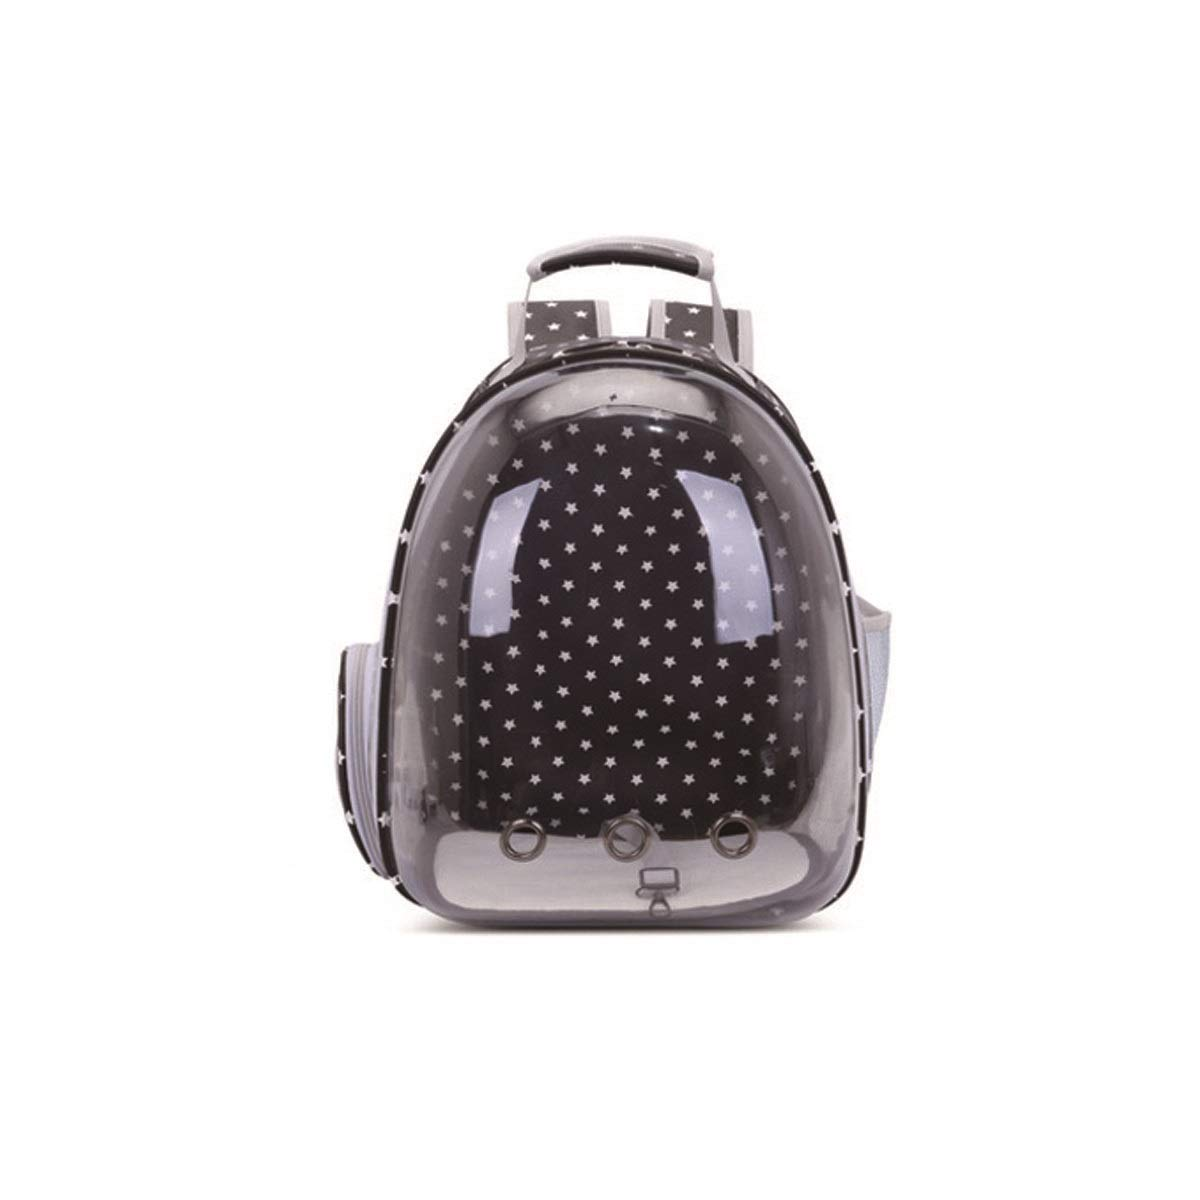 Black dots MHENGTONGTONGXUN Pet Carrier, Pet Transparent Carrier, Portable Cat Carrier, white five stars, white dots, black dots Bite resistant, wear resistant, washable (color   White dots, Size   M)